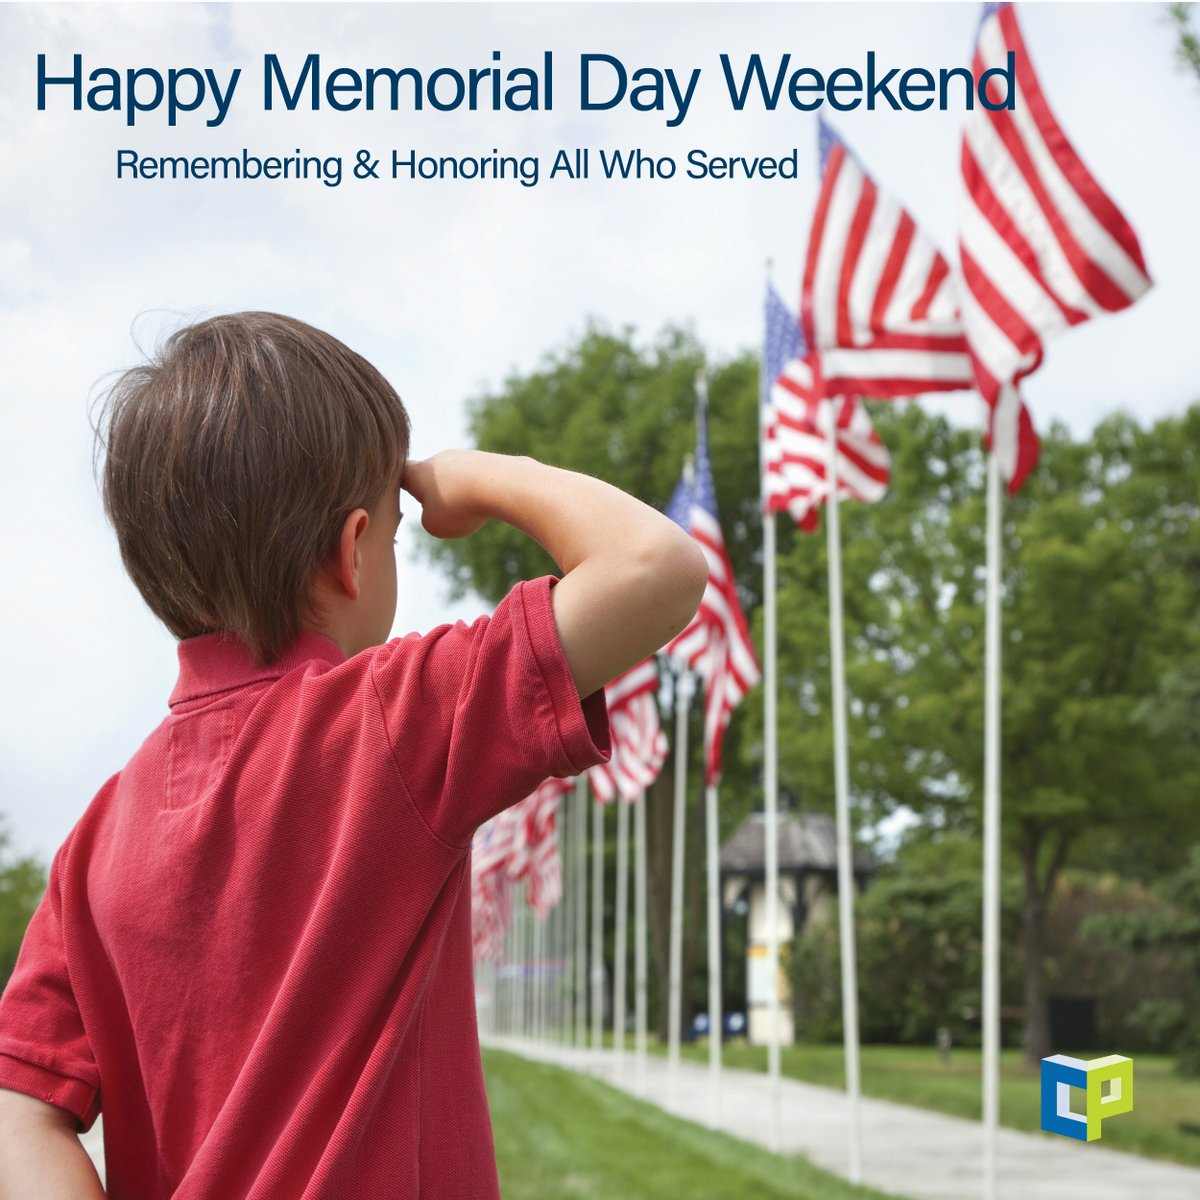 test Twitter Media - This Memorial Day, we remember the men and women who have given their lives in service for our country.  #CitadelPartners #commercialrealestate #dallas #memorialday #memorialdayweekend #thankyouforyourservice #veterans #america https://t.co/O5gdKtXWUT